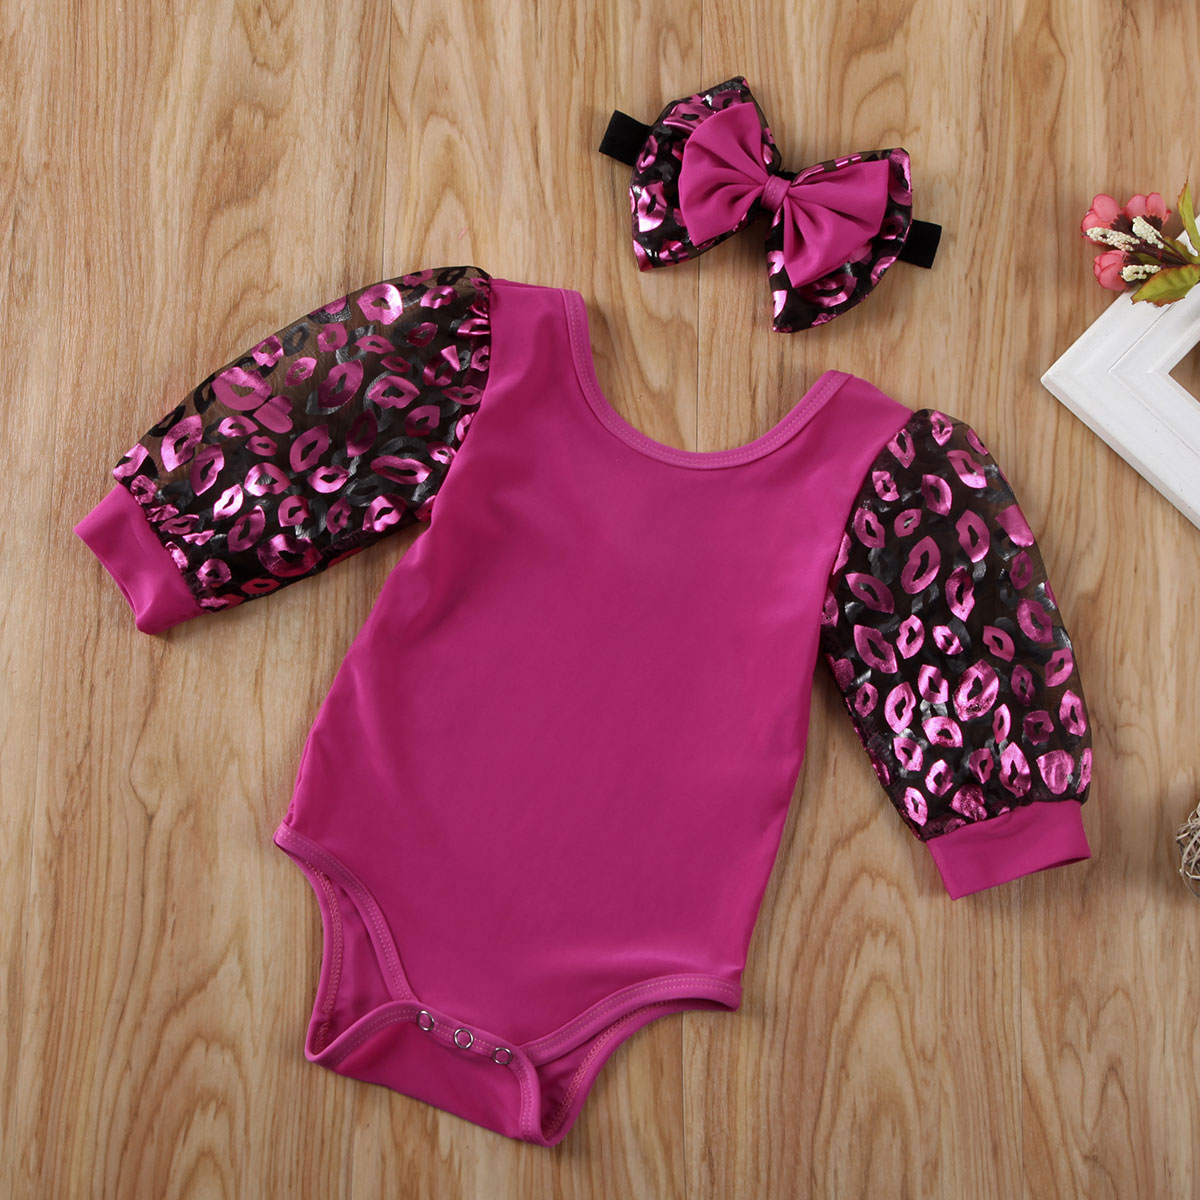 Pudcoco Newborn Baby Girl Clothes Lips Print Puff Tulle Long Sleeve Romper Jumpsuit Headband 2Pcs Outfits Clothes